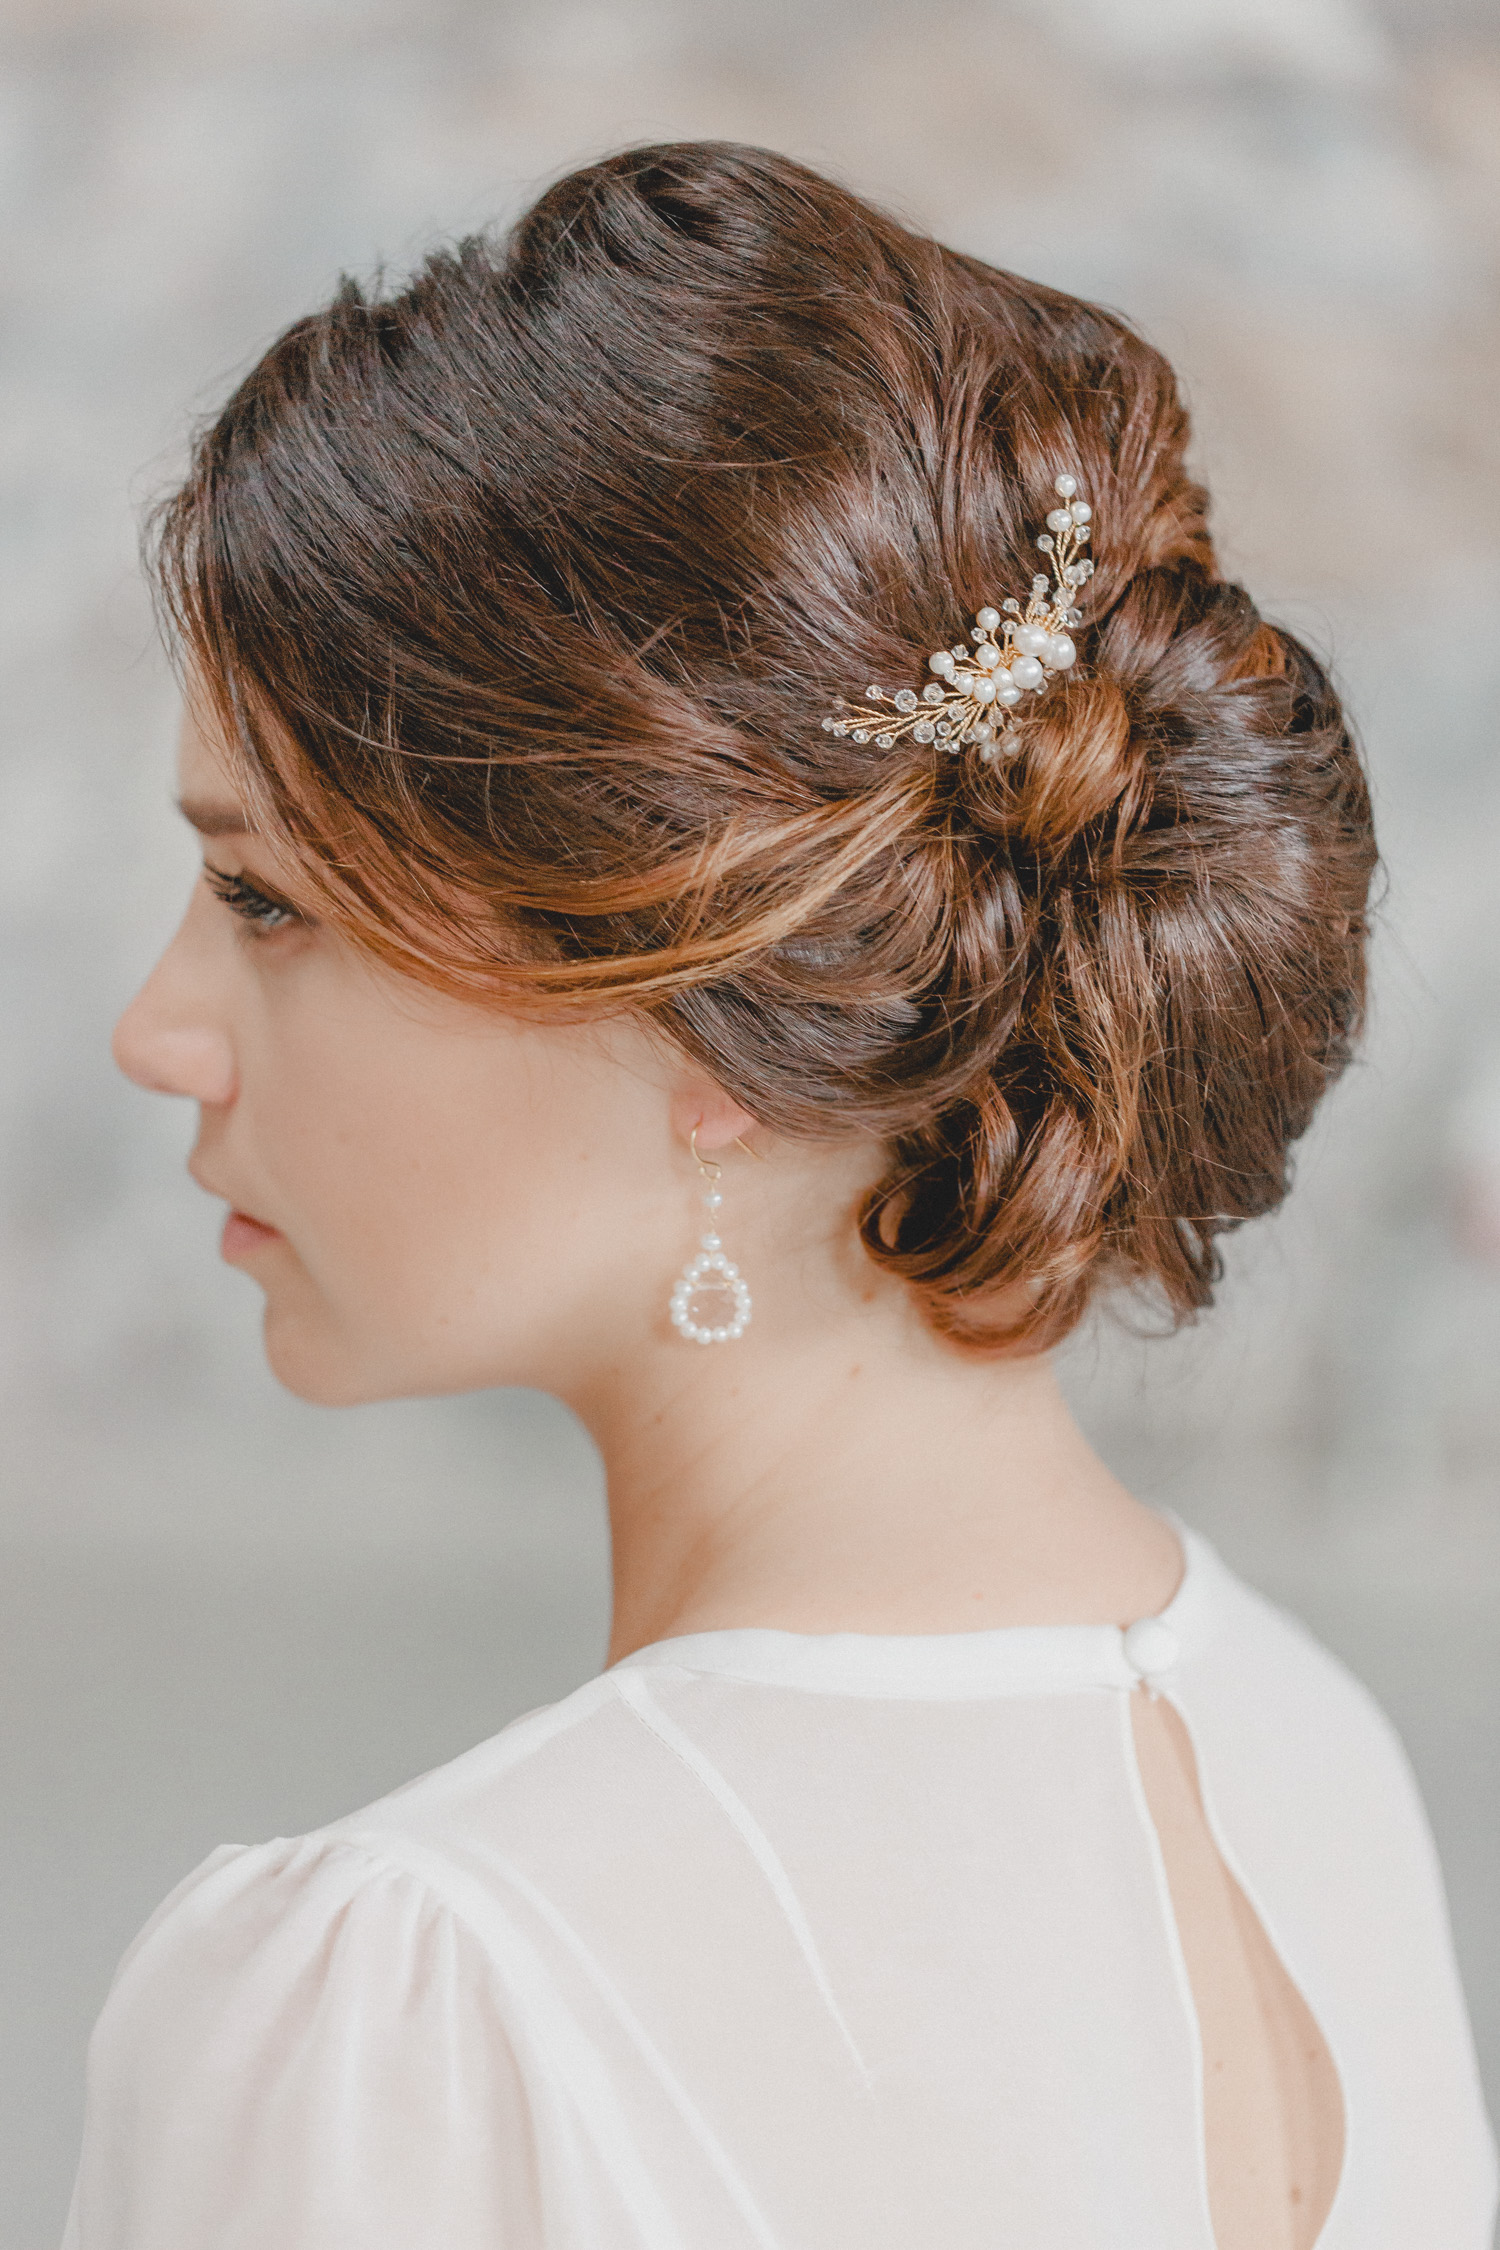 This lovingly handcrafted hair accessory takes white freshwater pearls and sparkling Swarovski crystals into a finely branched hair comb to create a timelessly romantic wing shape design.